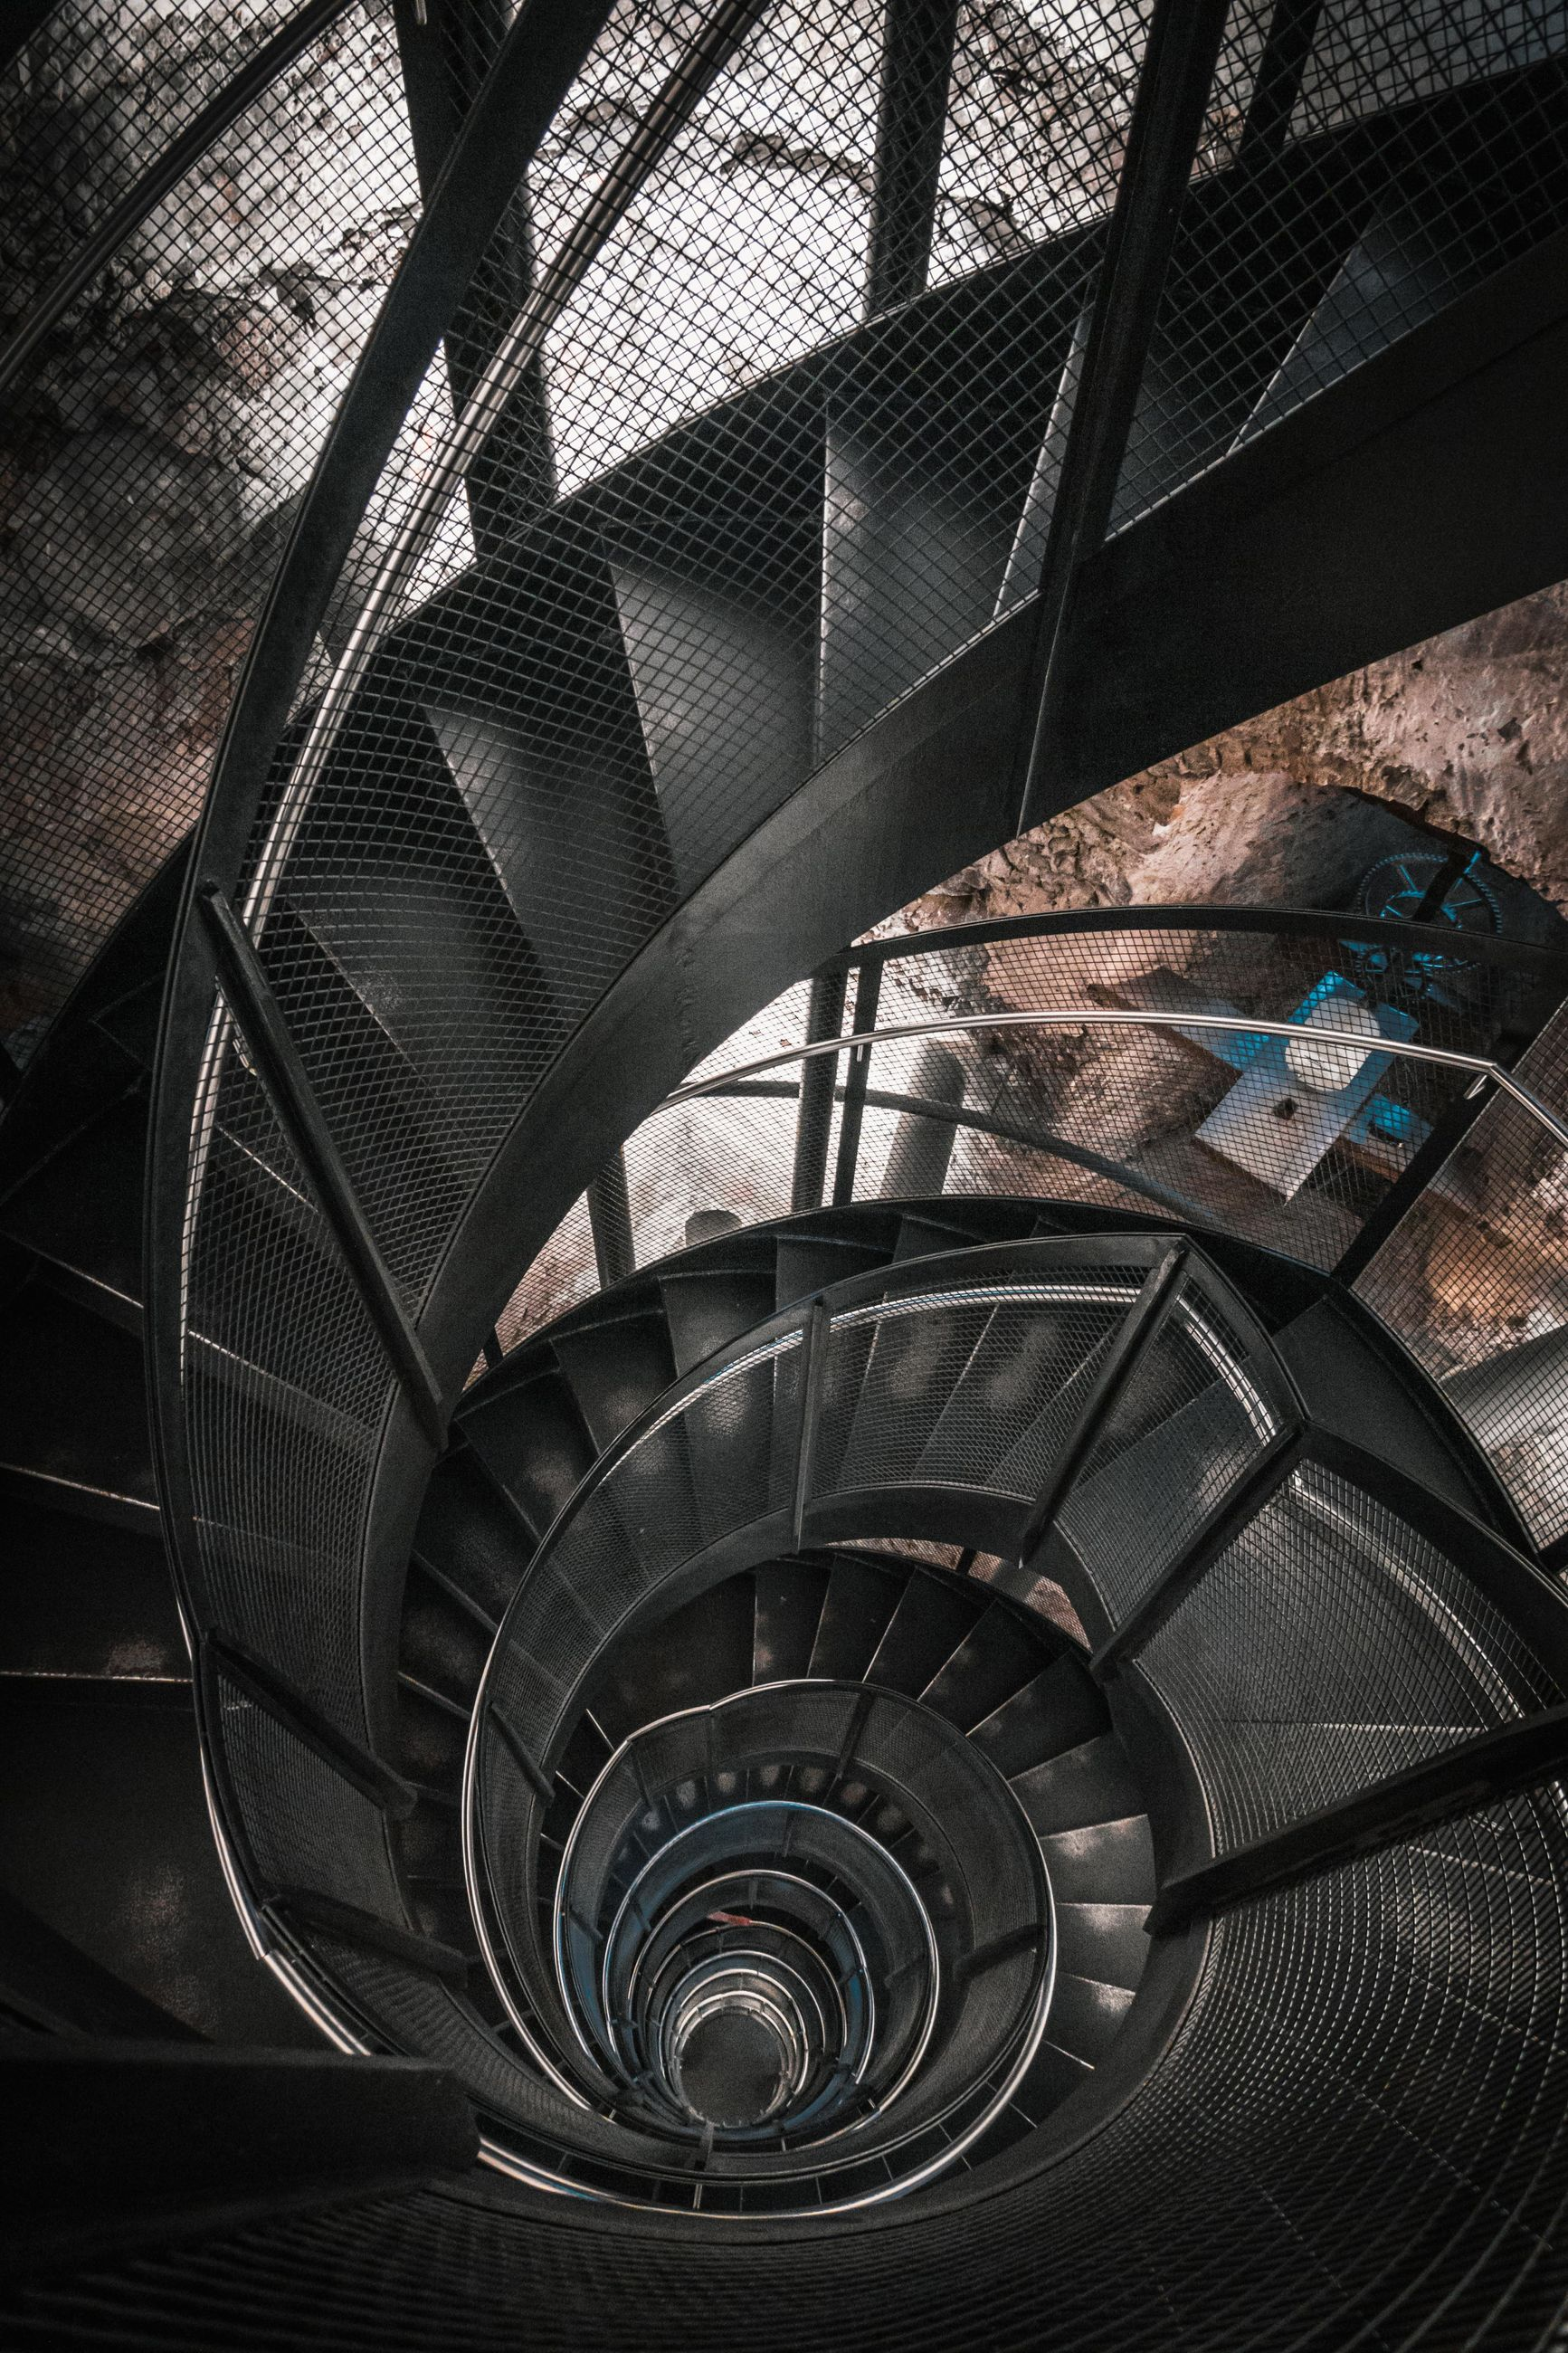 staircase, steps and staircases, architecture, spiral, indoors, built structure, railing, high angle view, metal, no people, spiral staircase, pattern, day, directly above, mode of transportation, transportation, building, travel, car, wheel